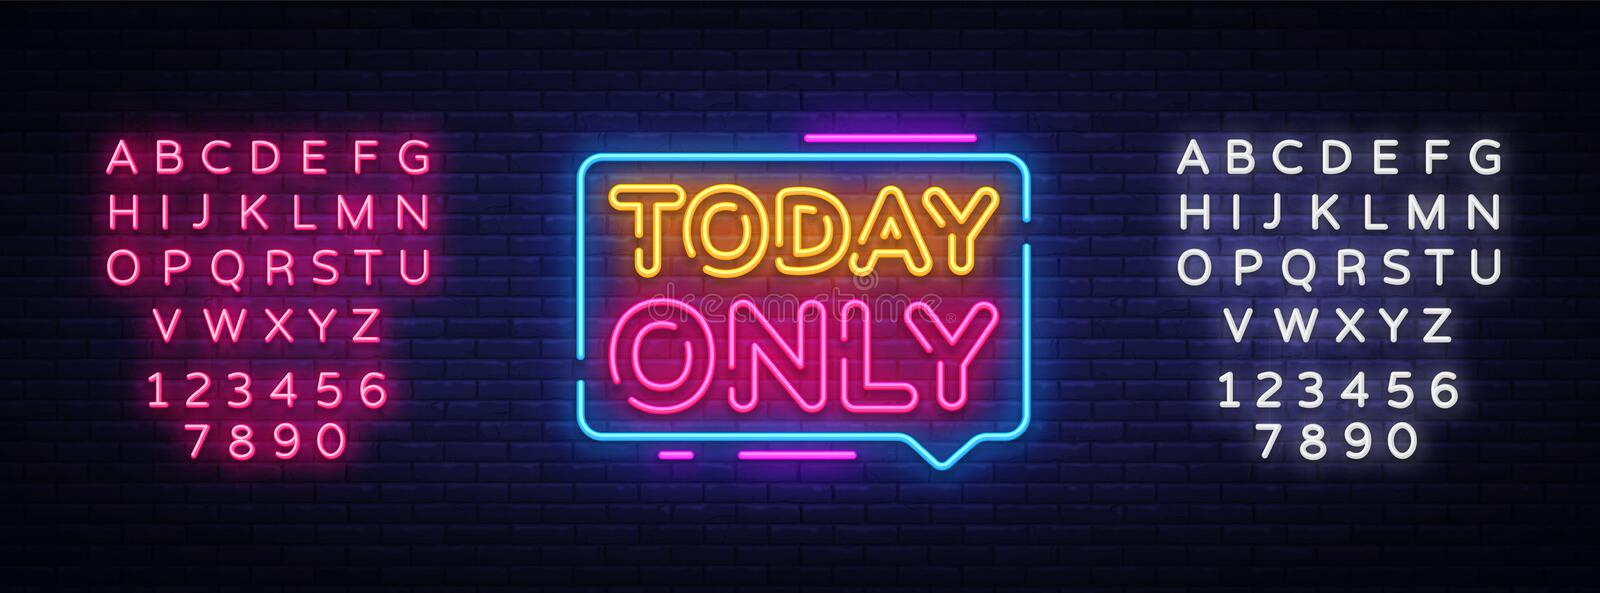 Today Only Neon Text Vector. Today Only neon sign, design template, modern trend design, night neon signboard, night. Bright advertising, light banner, light vector illustration